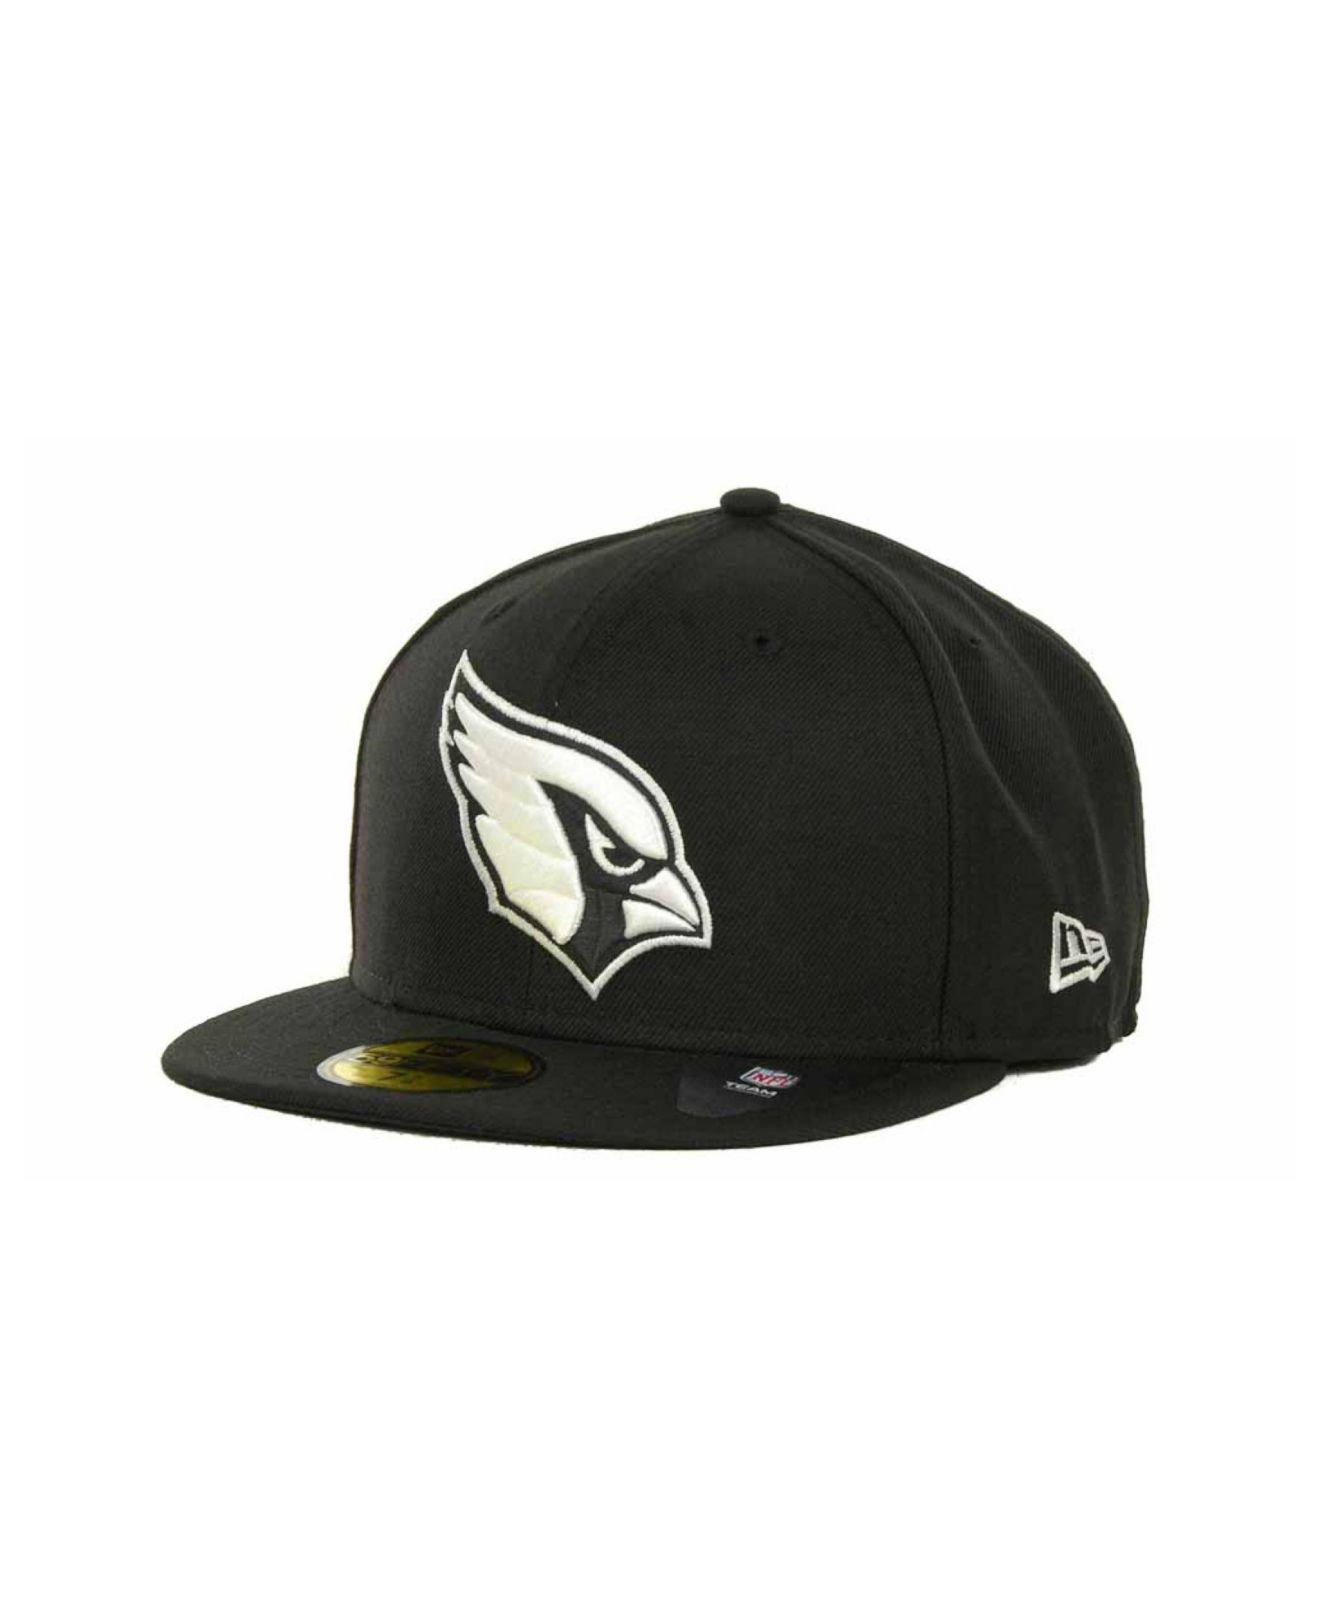 purchase cheap b1715 1ed87 KTZ. Men s Black Arizona Cardinals 59fifty Cap